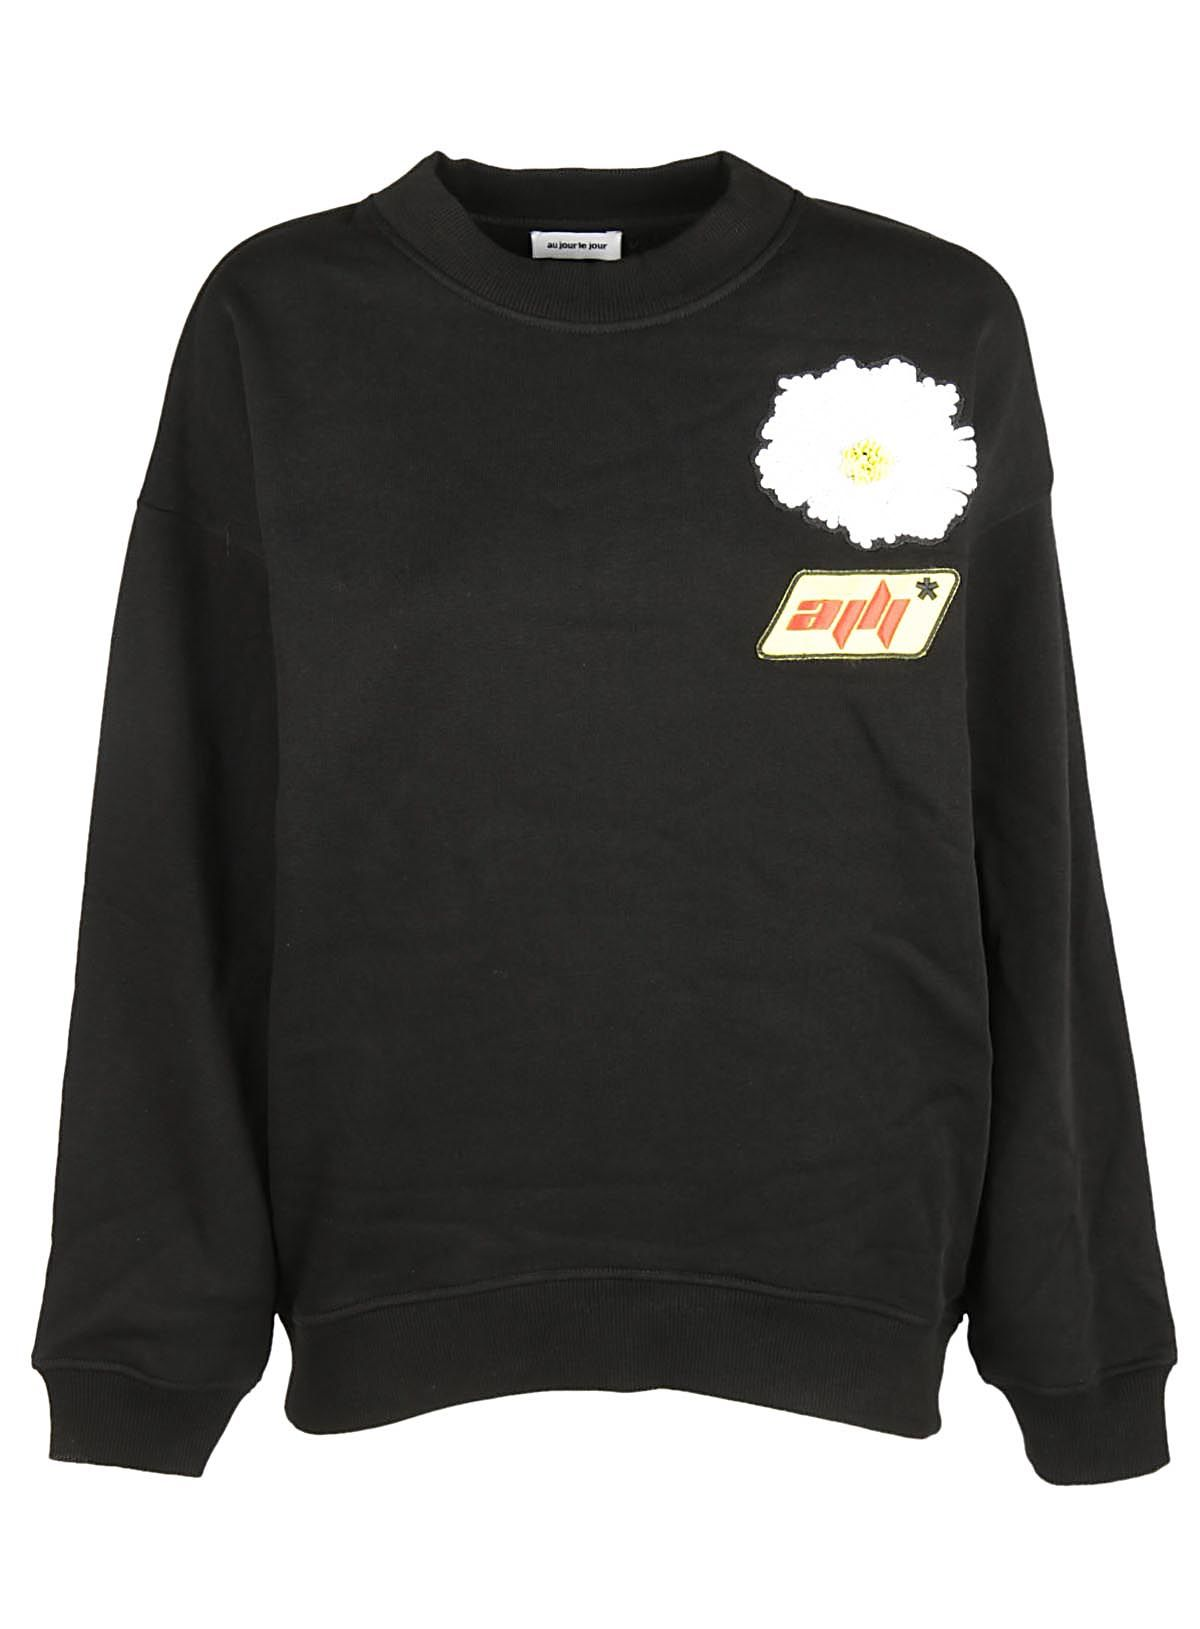 Au Jour Le Jour Au Jour Le Jour Embroidered Patch Sweatshirt